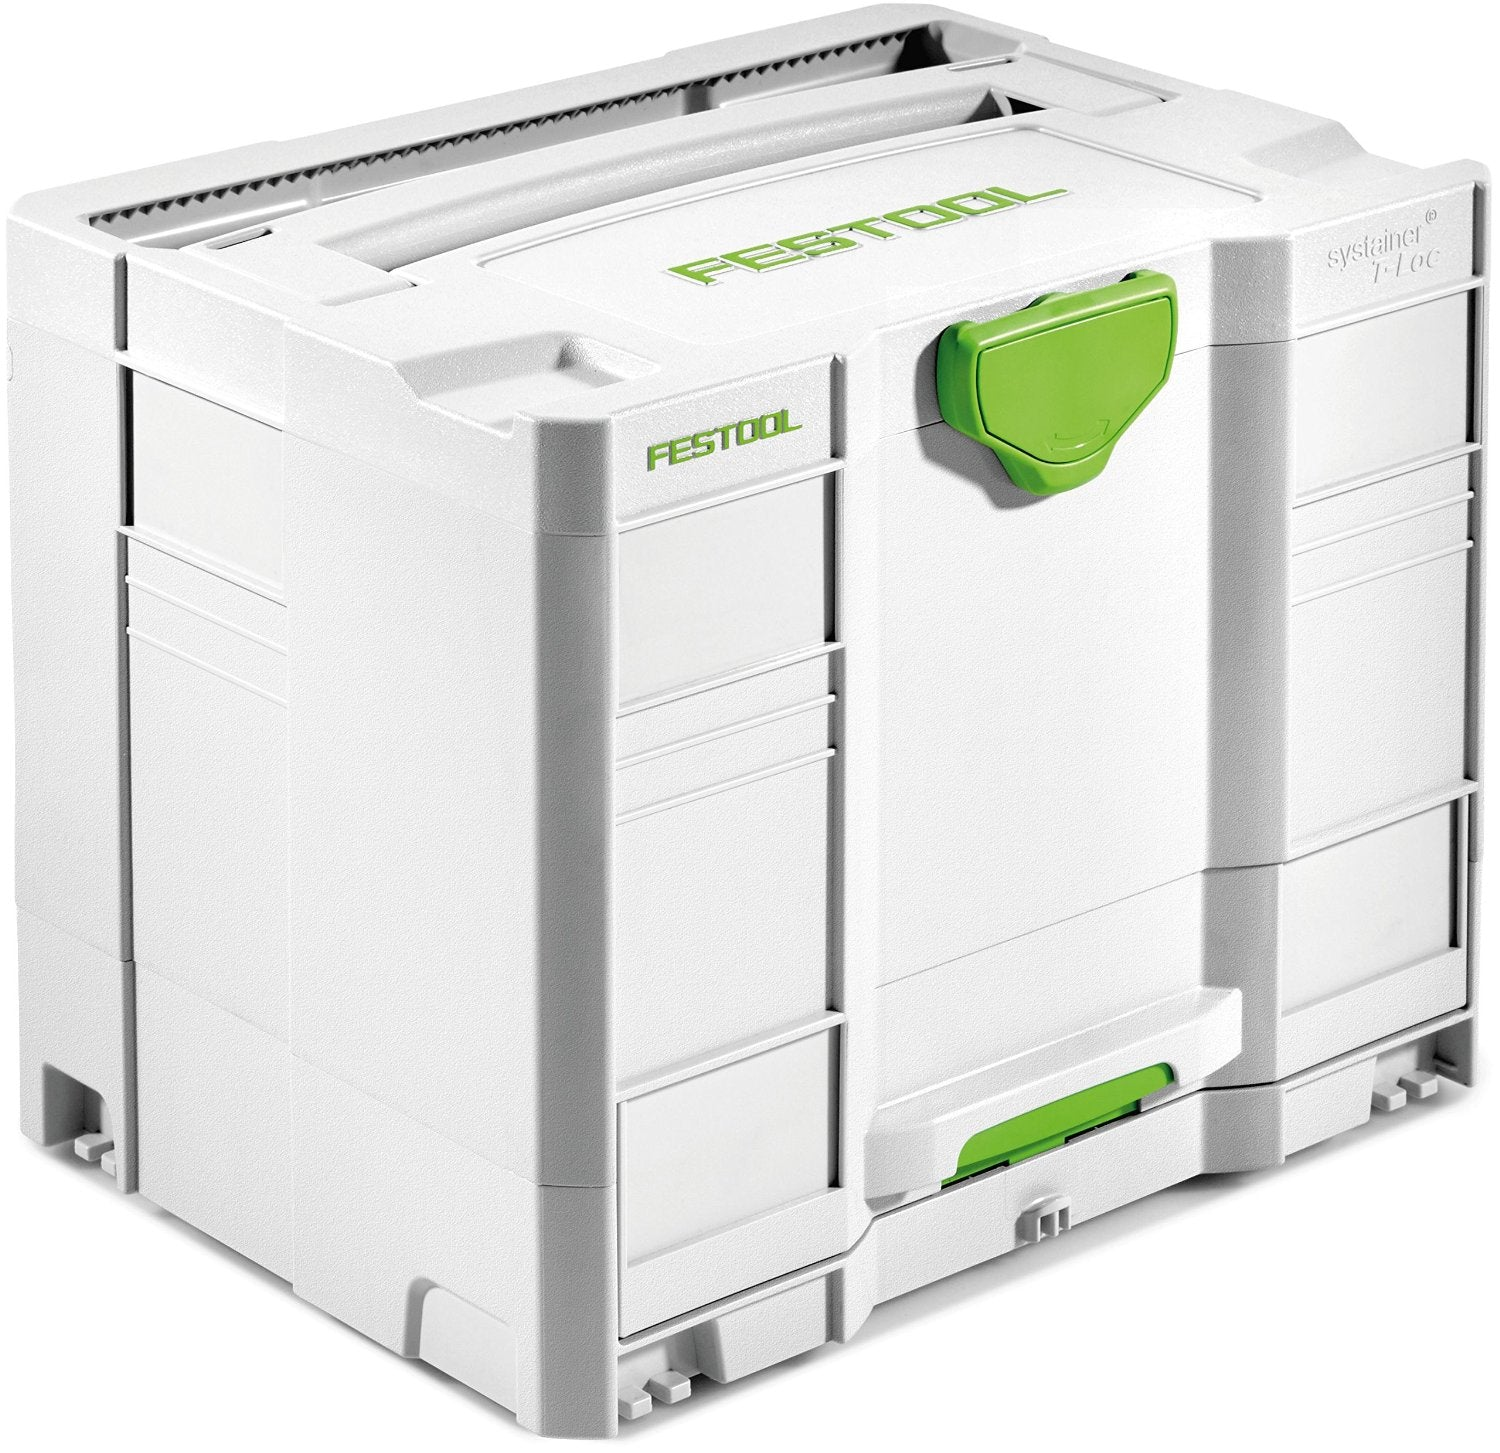 FESTOOL 200118 SYSTAINER SYS-COMBI 3-Marson Equipment